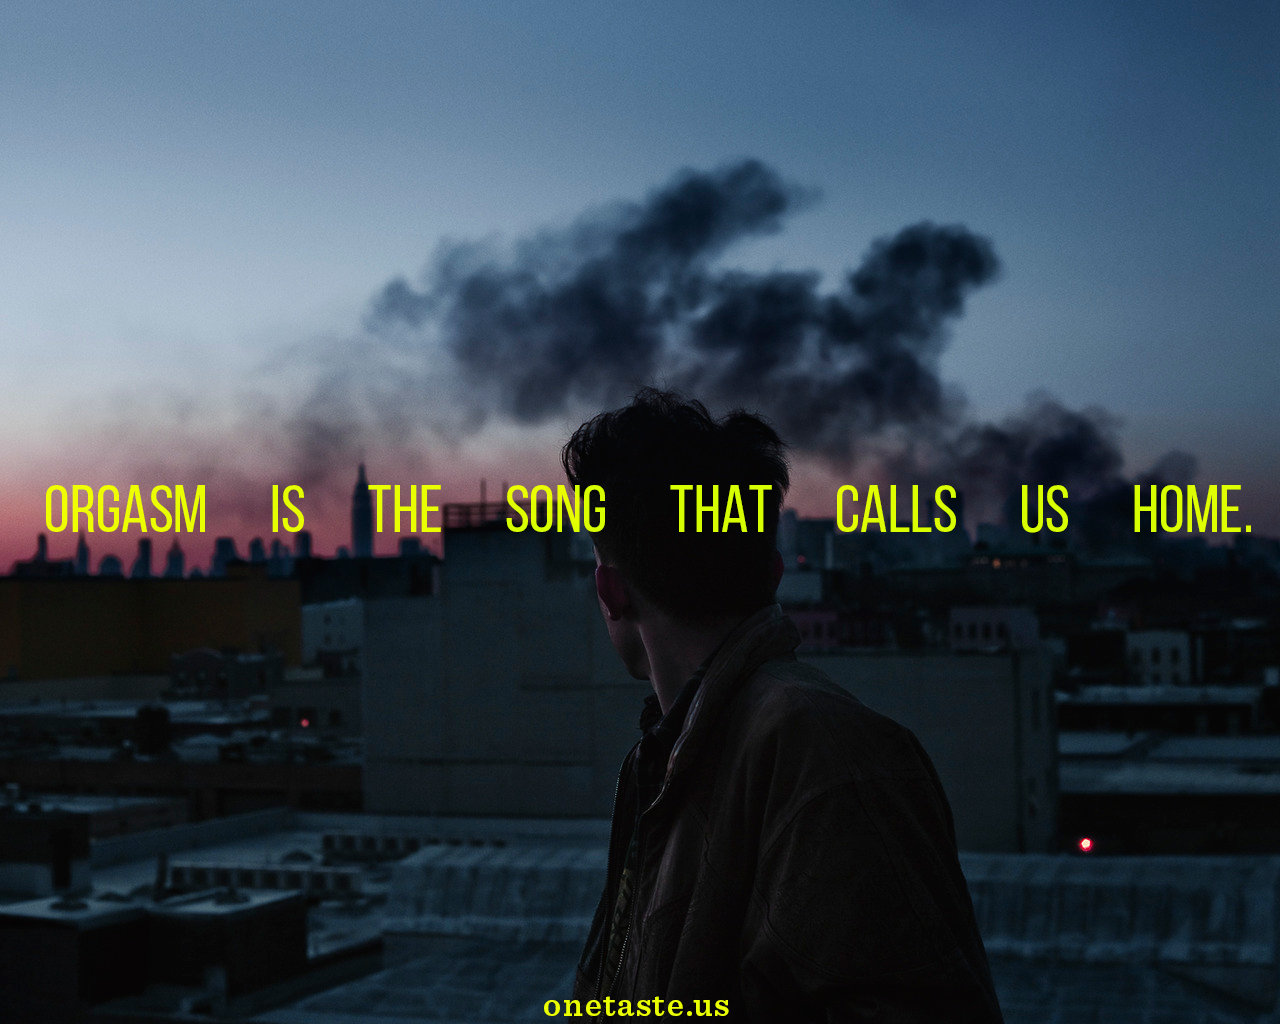 Orgasm is the song that calls us home